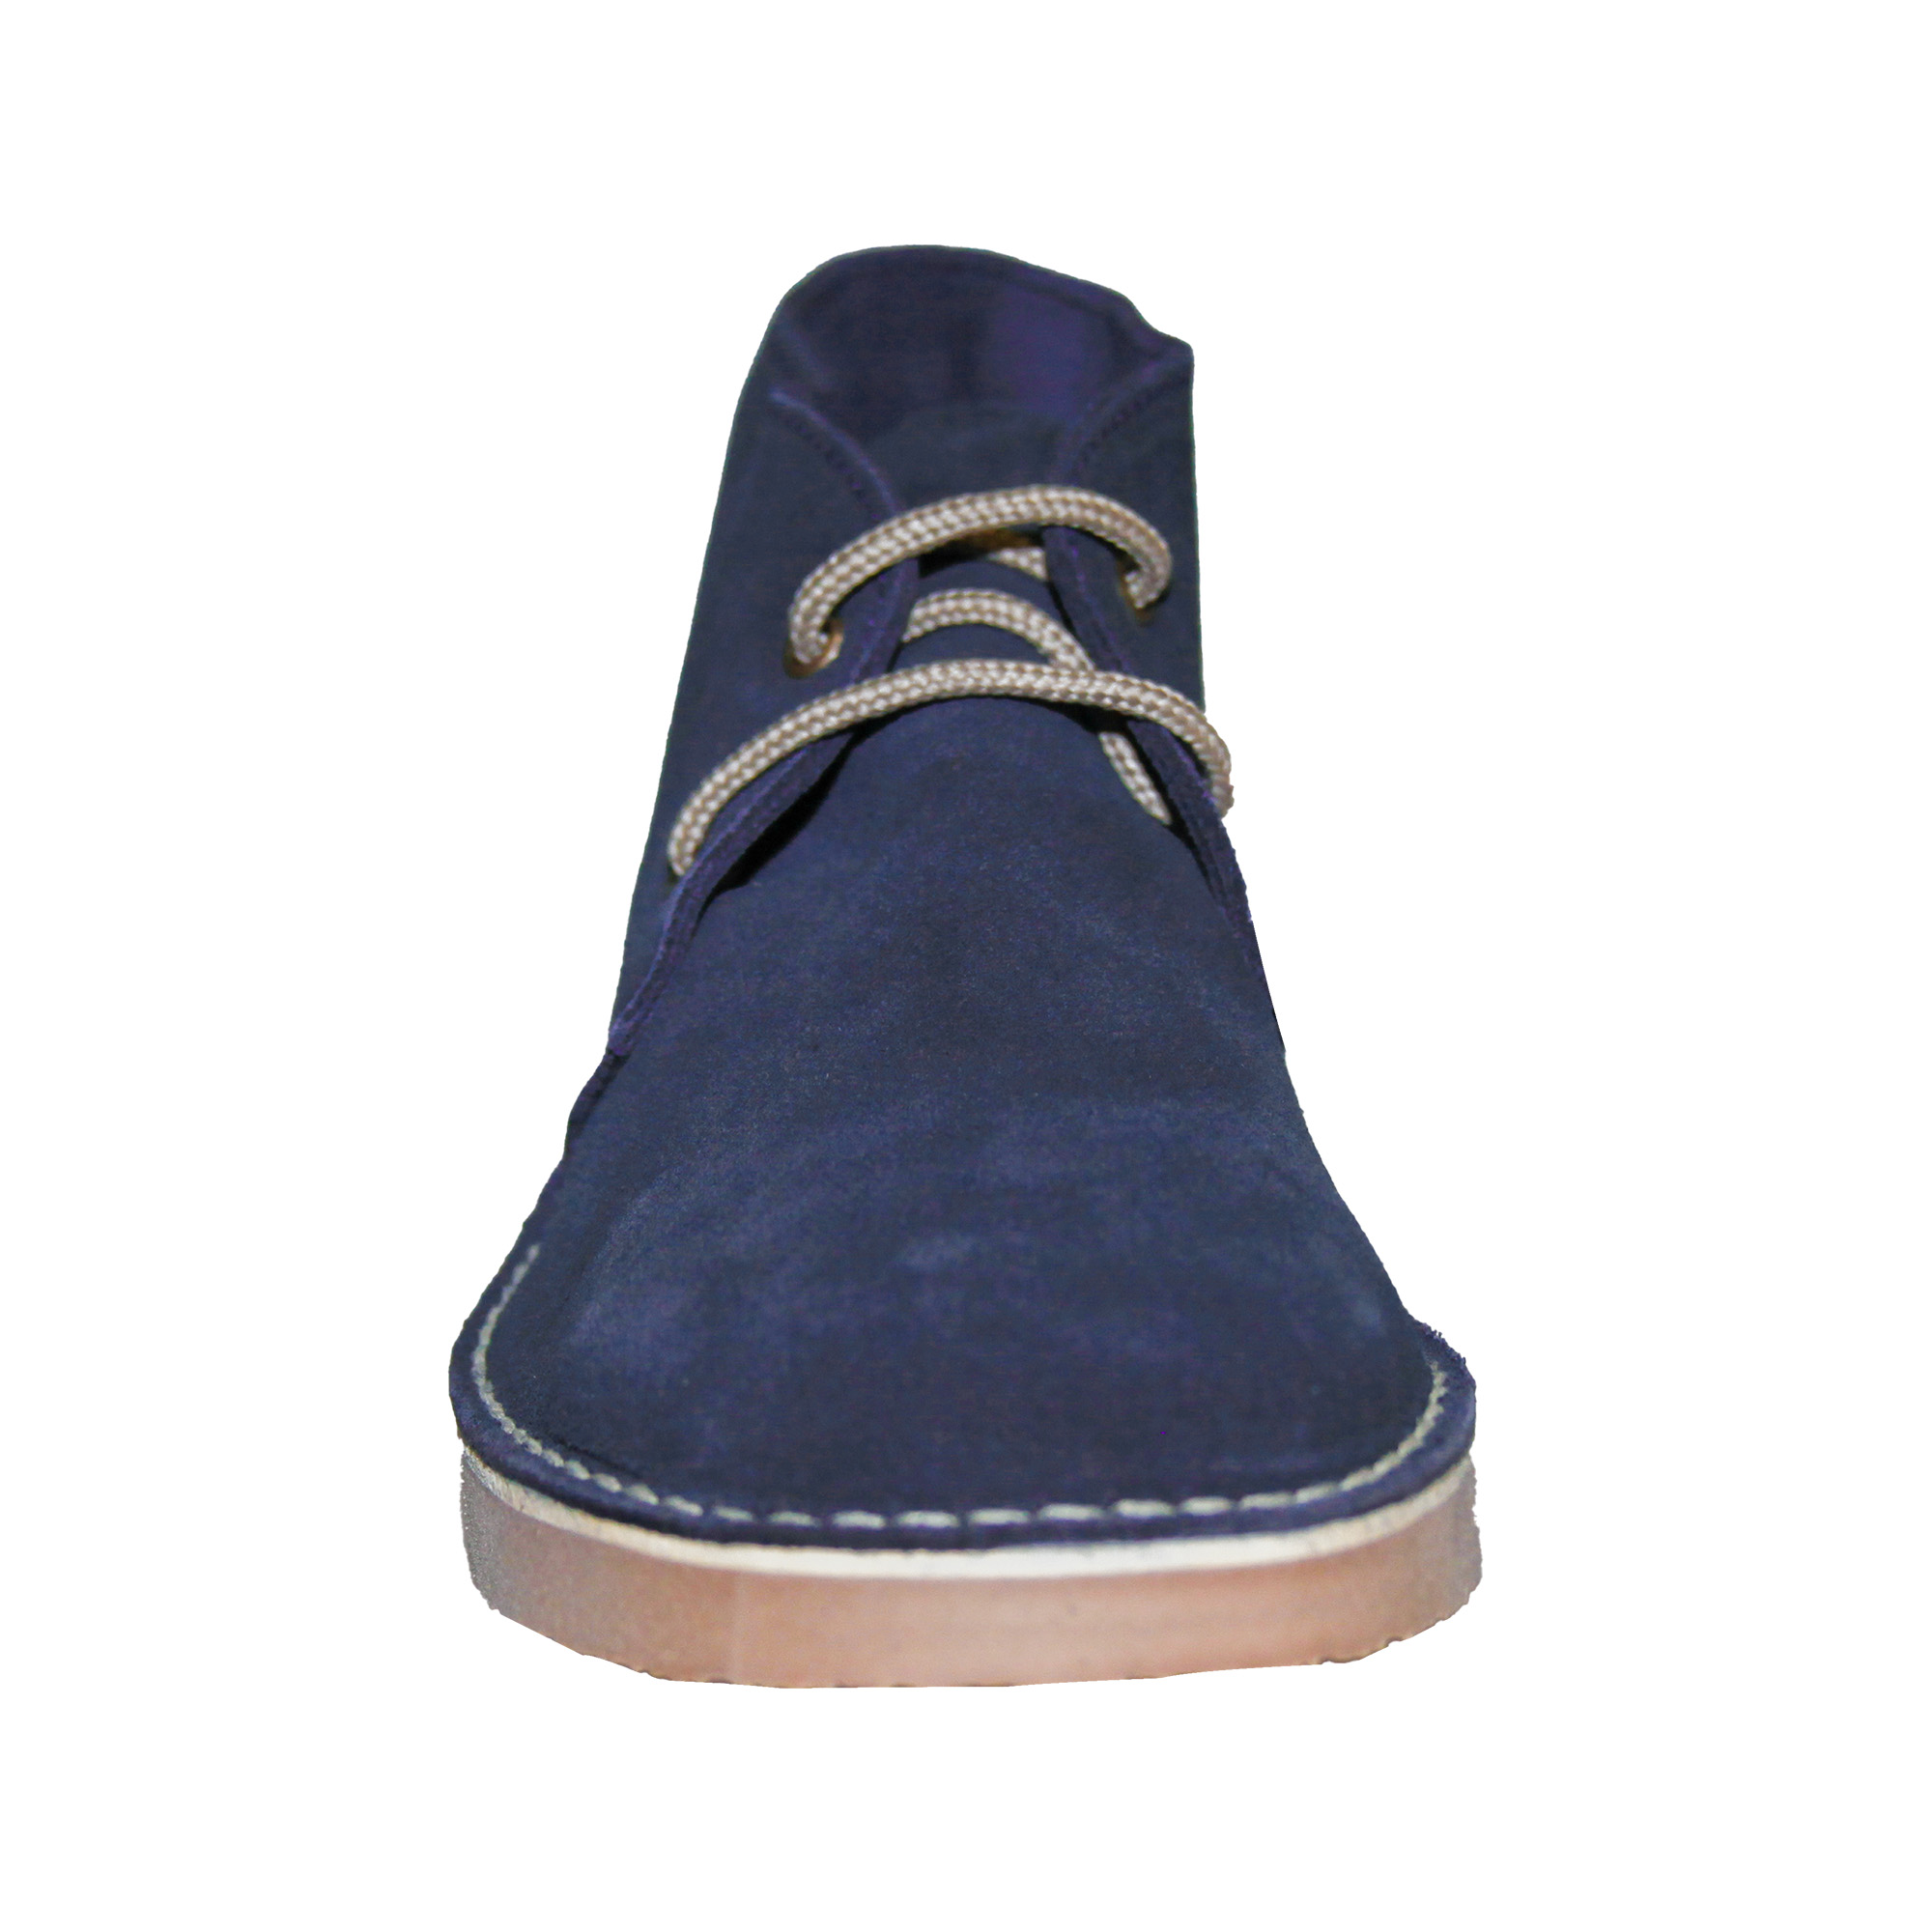 Roamers Mens Real Suede Round Toe Unlined Desert Boots (7 UK) (Black)